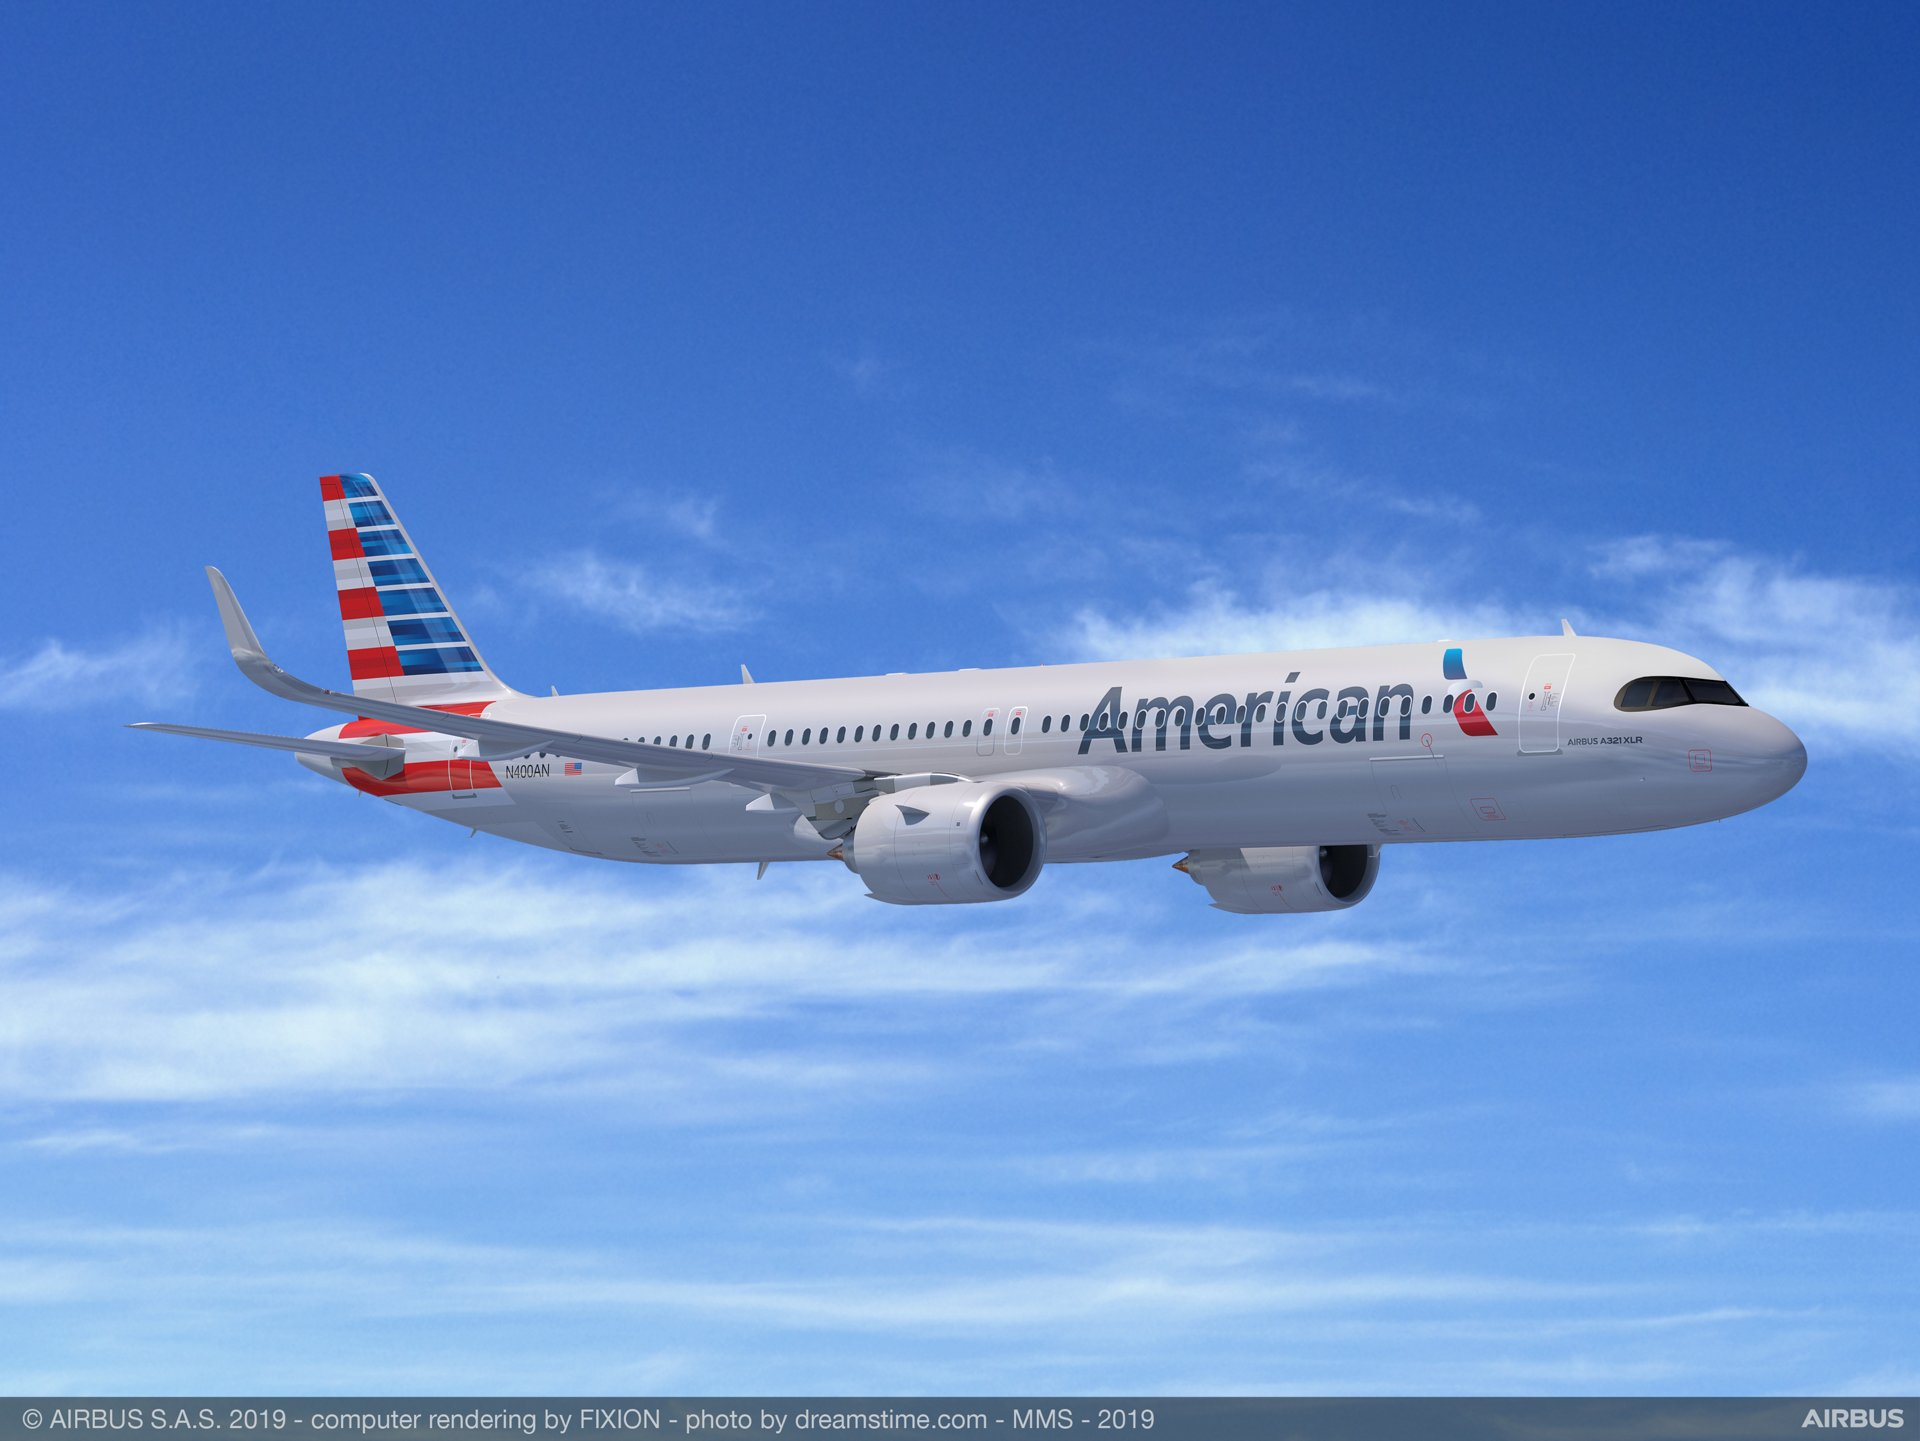 American Airlines will acquire 50 Airbus A321XLR aircraft under terms of a purchase agreement announced at the 2019 Paris Air Show